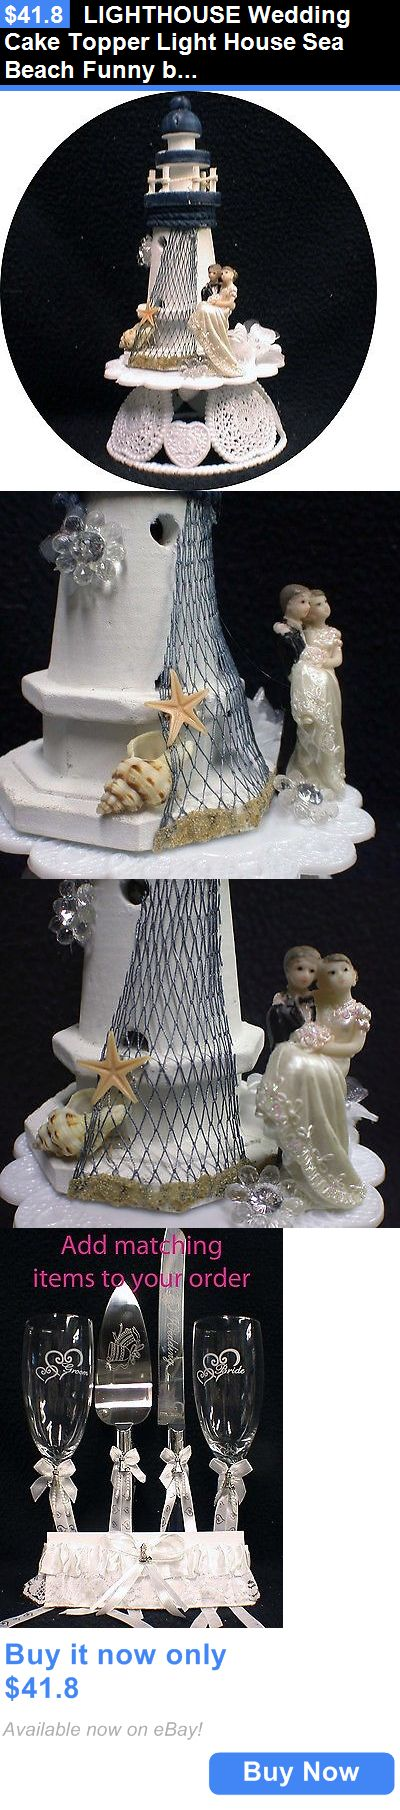 Wedding Cakes Toppers: Lighthouse Wedding Cake Topper Light House Sea Beach Funny Bride Groom Top Lake BUY IT NOW ONLY: $41.8